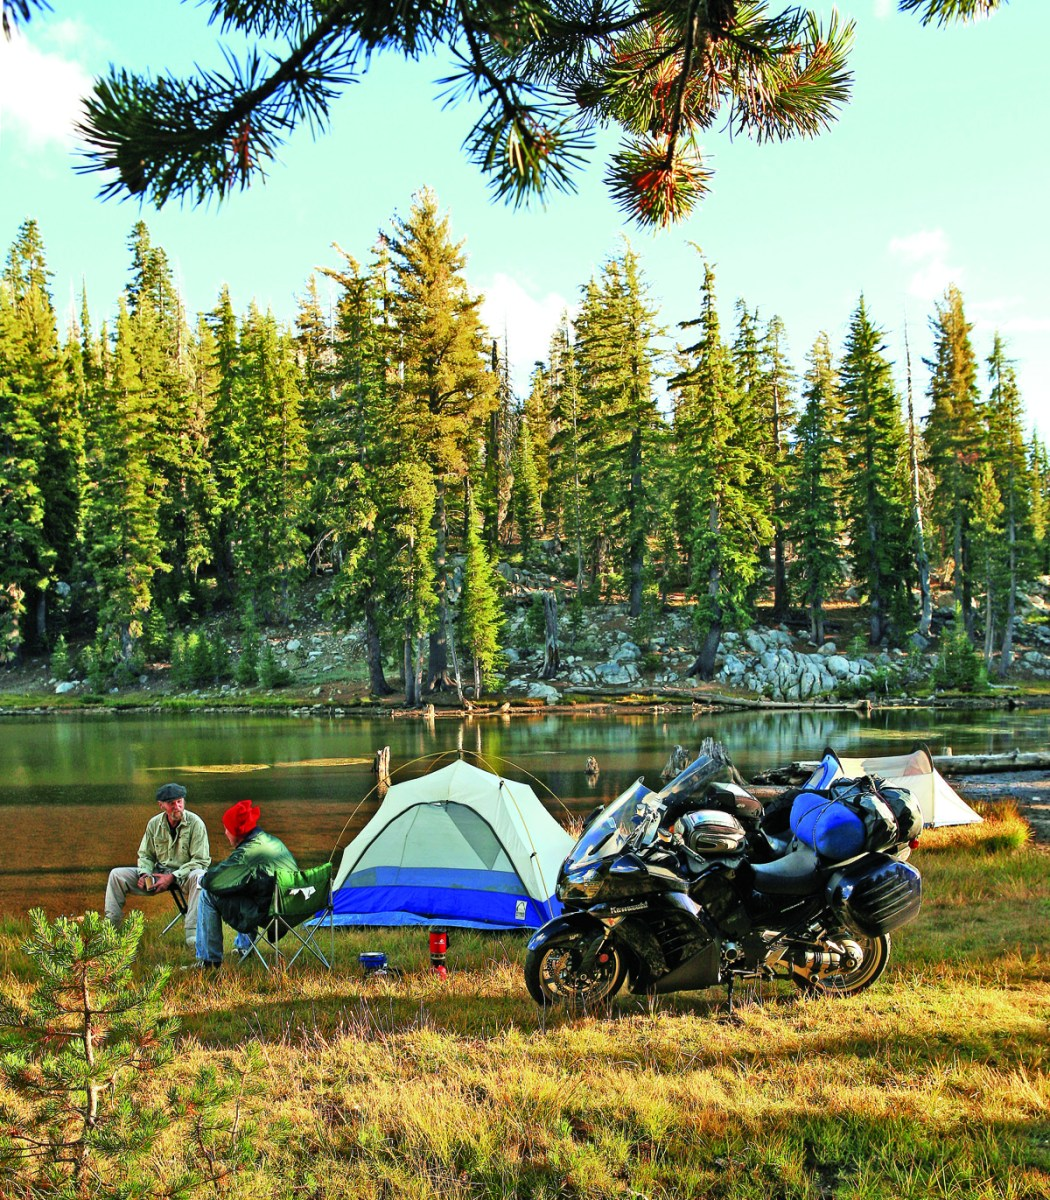 Motorcycle Camping And Adventure Gear Buyers Guide Rider